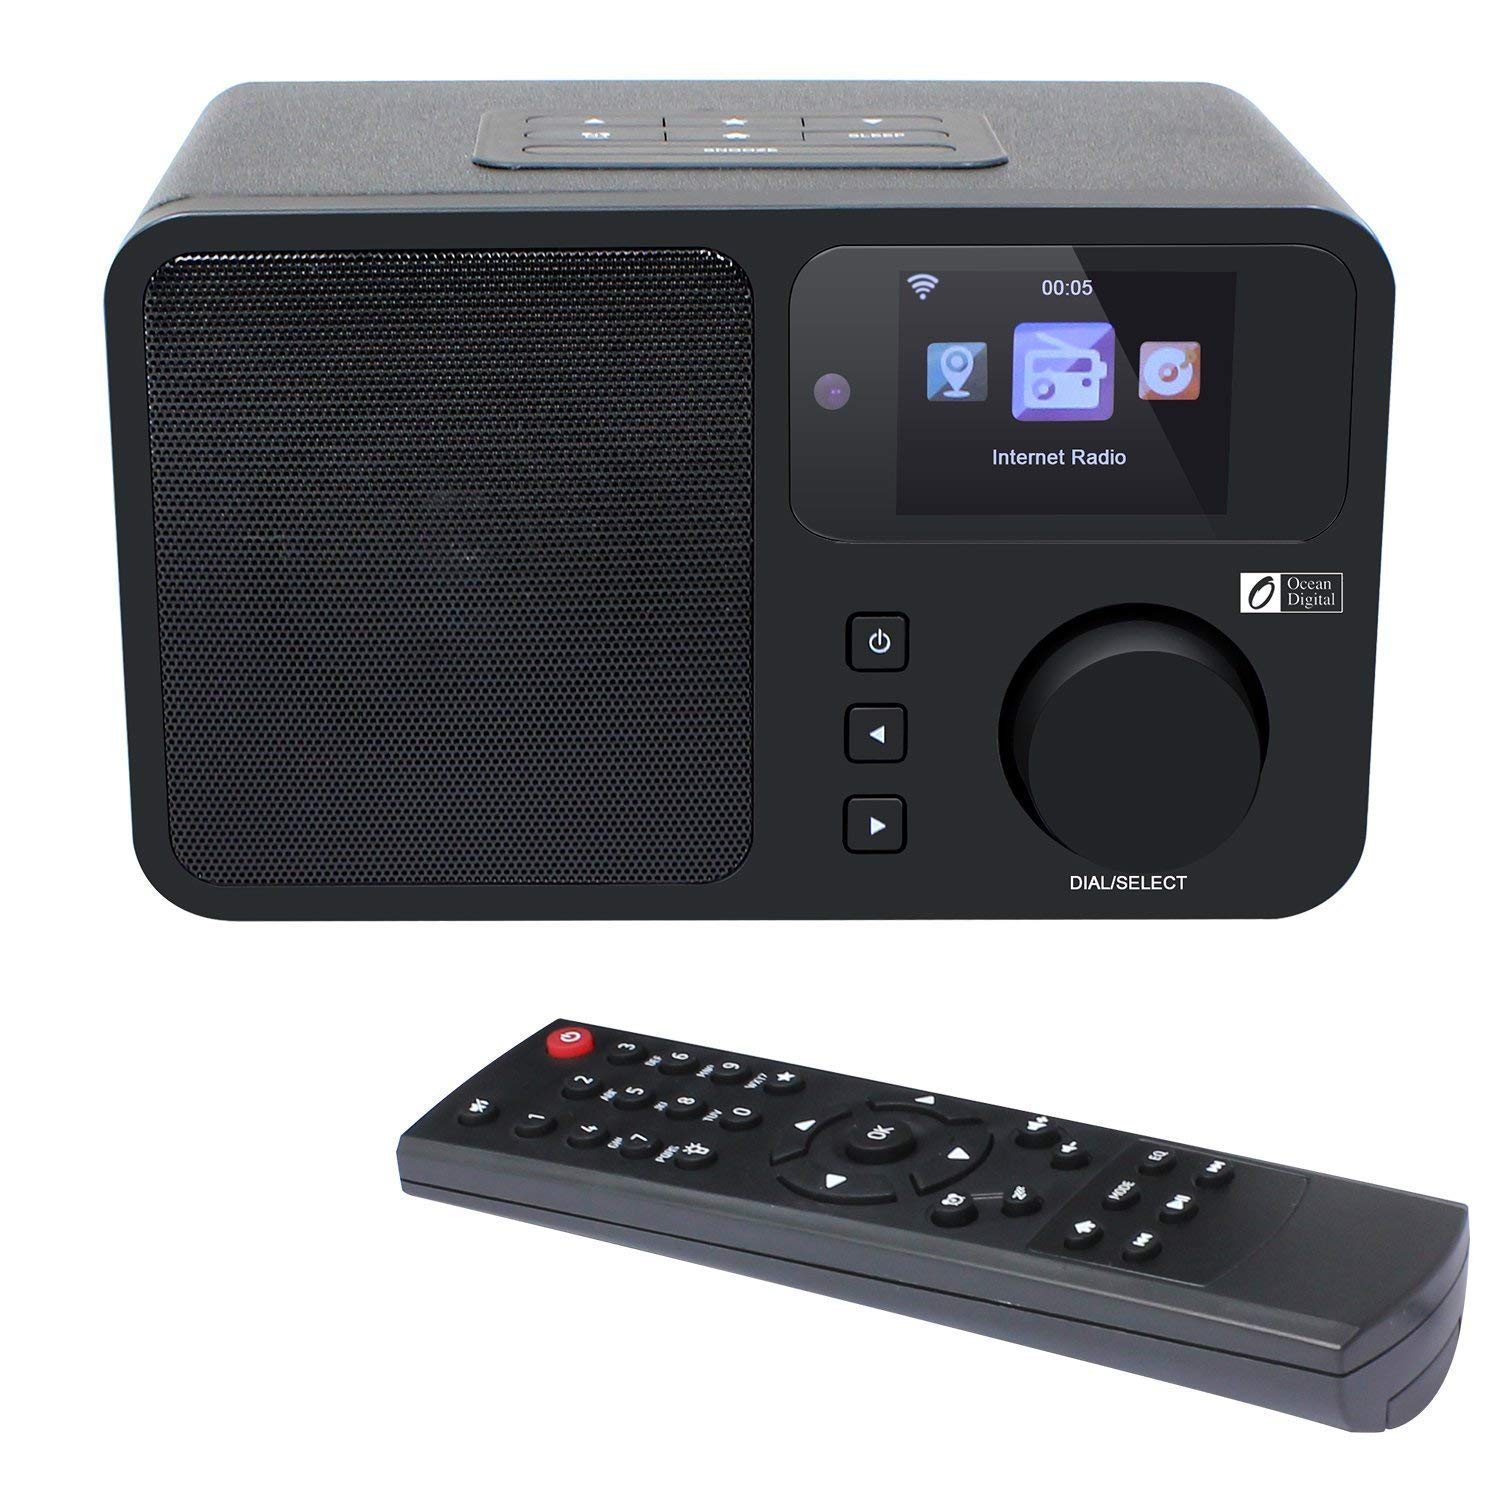 Ocean Digital Internet Radio WR233 WiFi WLAN